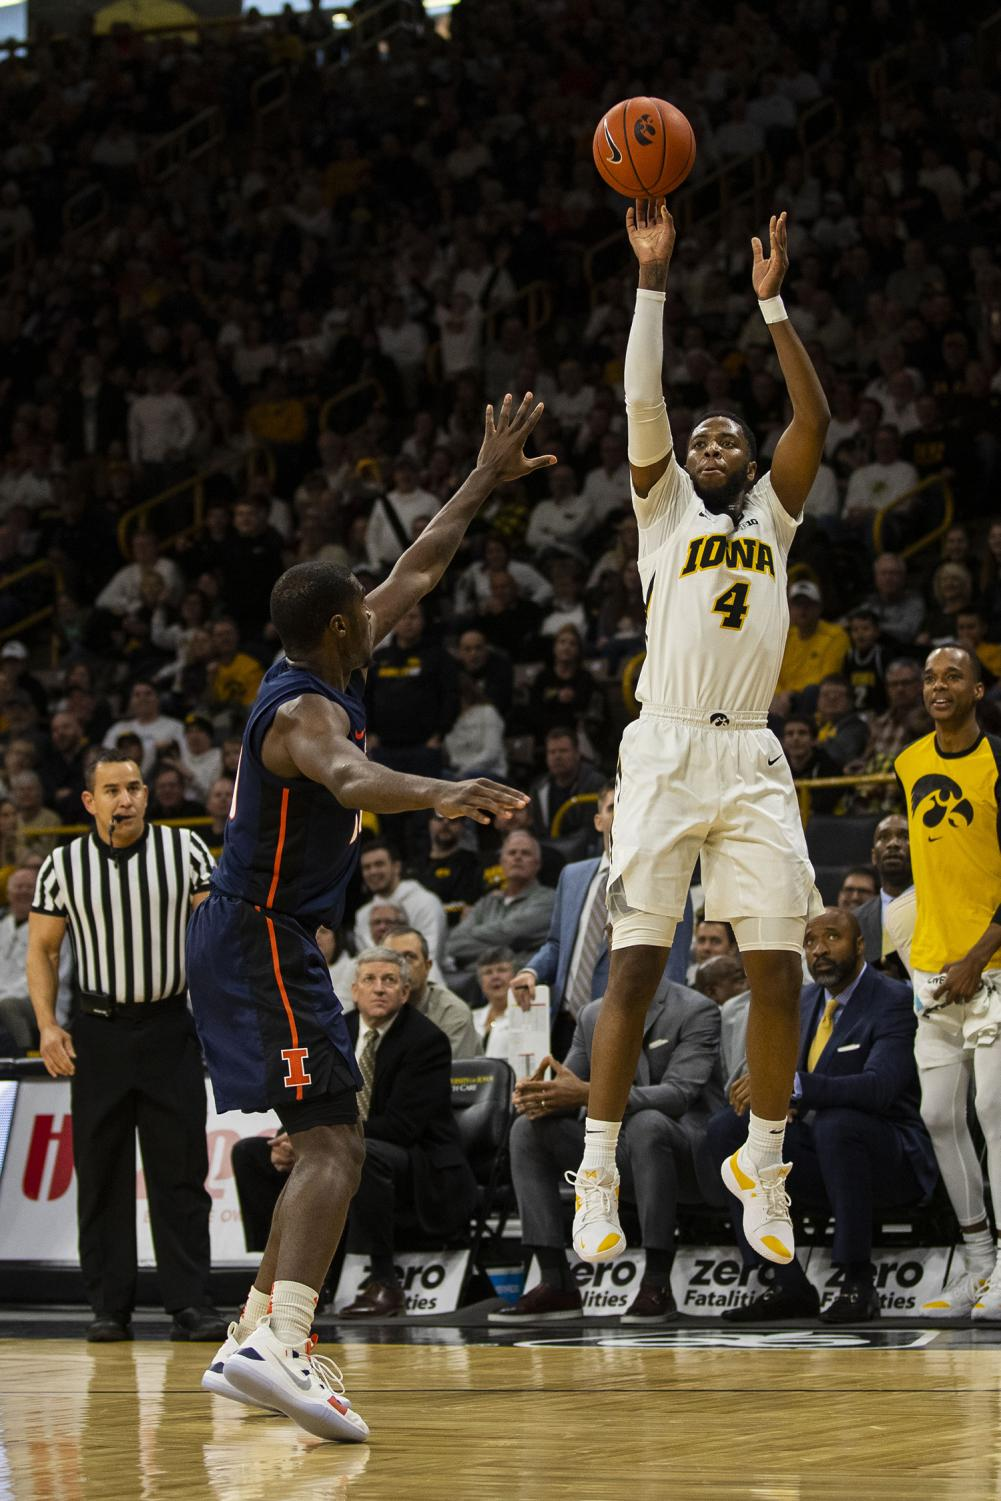 Iowa+guard+Isaiah+Moss+attempts+a+3-pointer+during+the+Iowa%2FIllinois+men%27s+basketball+game+at+Carver-Hawkeye+Arena+on+Sunday%2C+January+20%2C+2019.+The+Hawkeyes+defeated+the+Fighting+Illini%2C+95-71.+